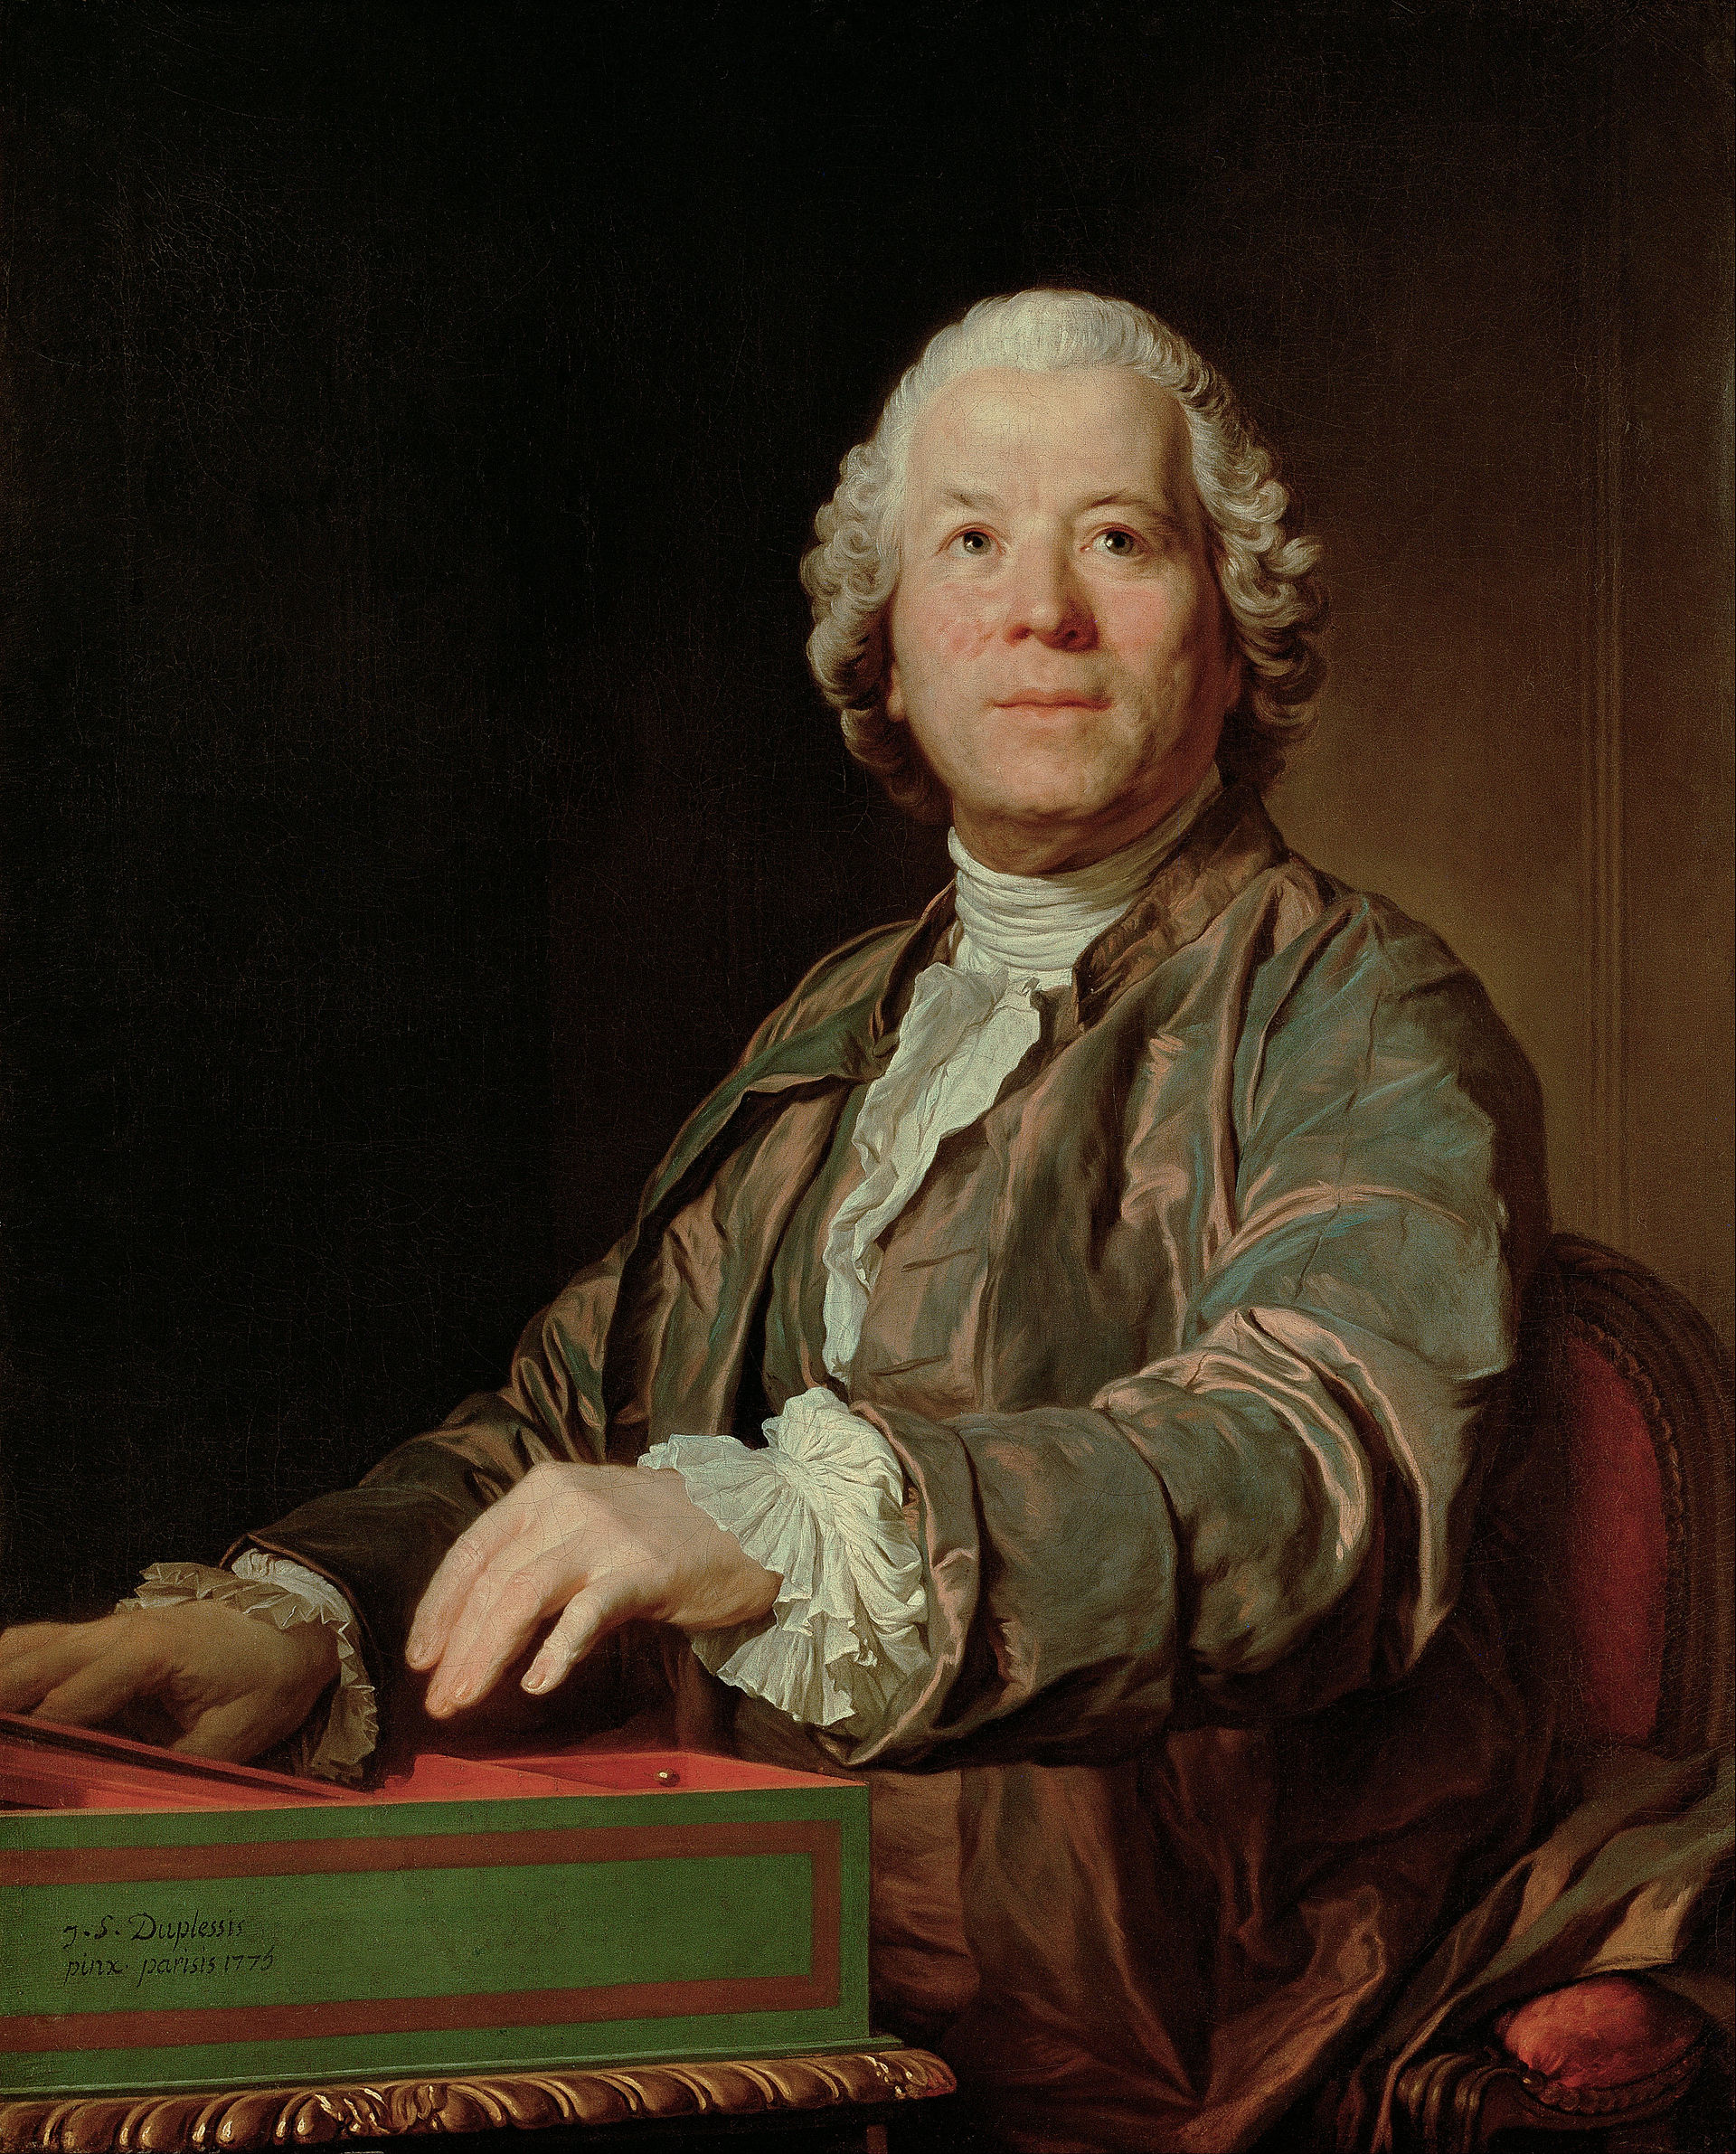 Christoph Willibald Gluck at the clavichord, painted in 1775